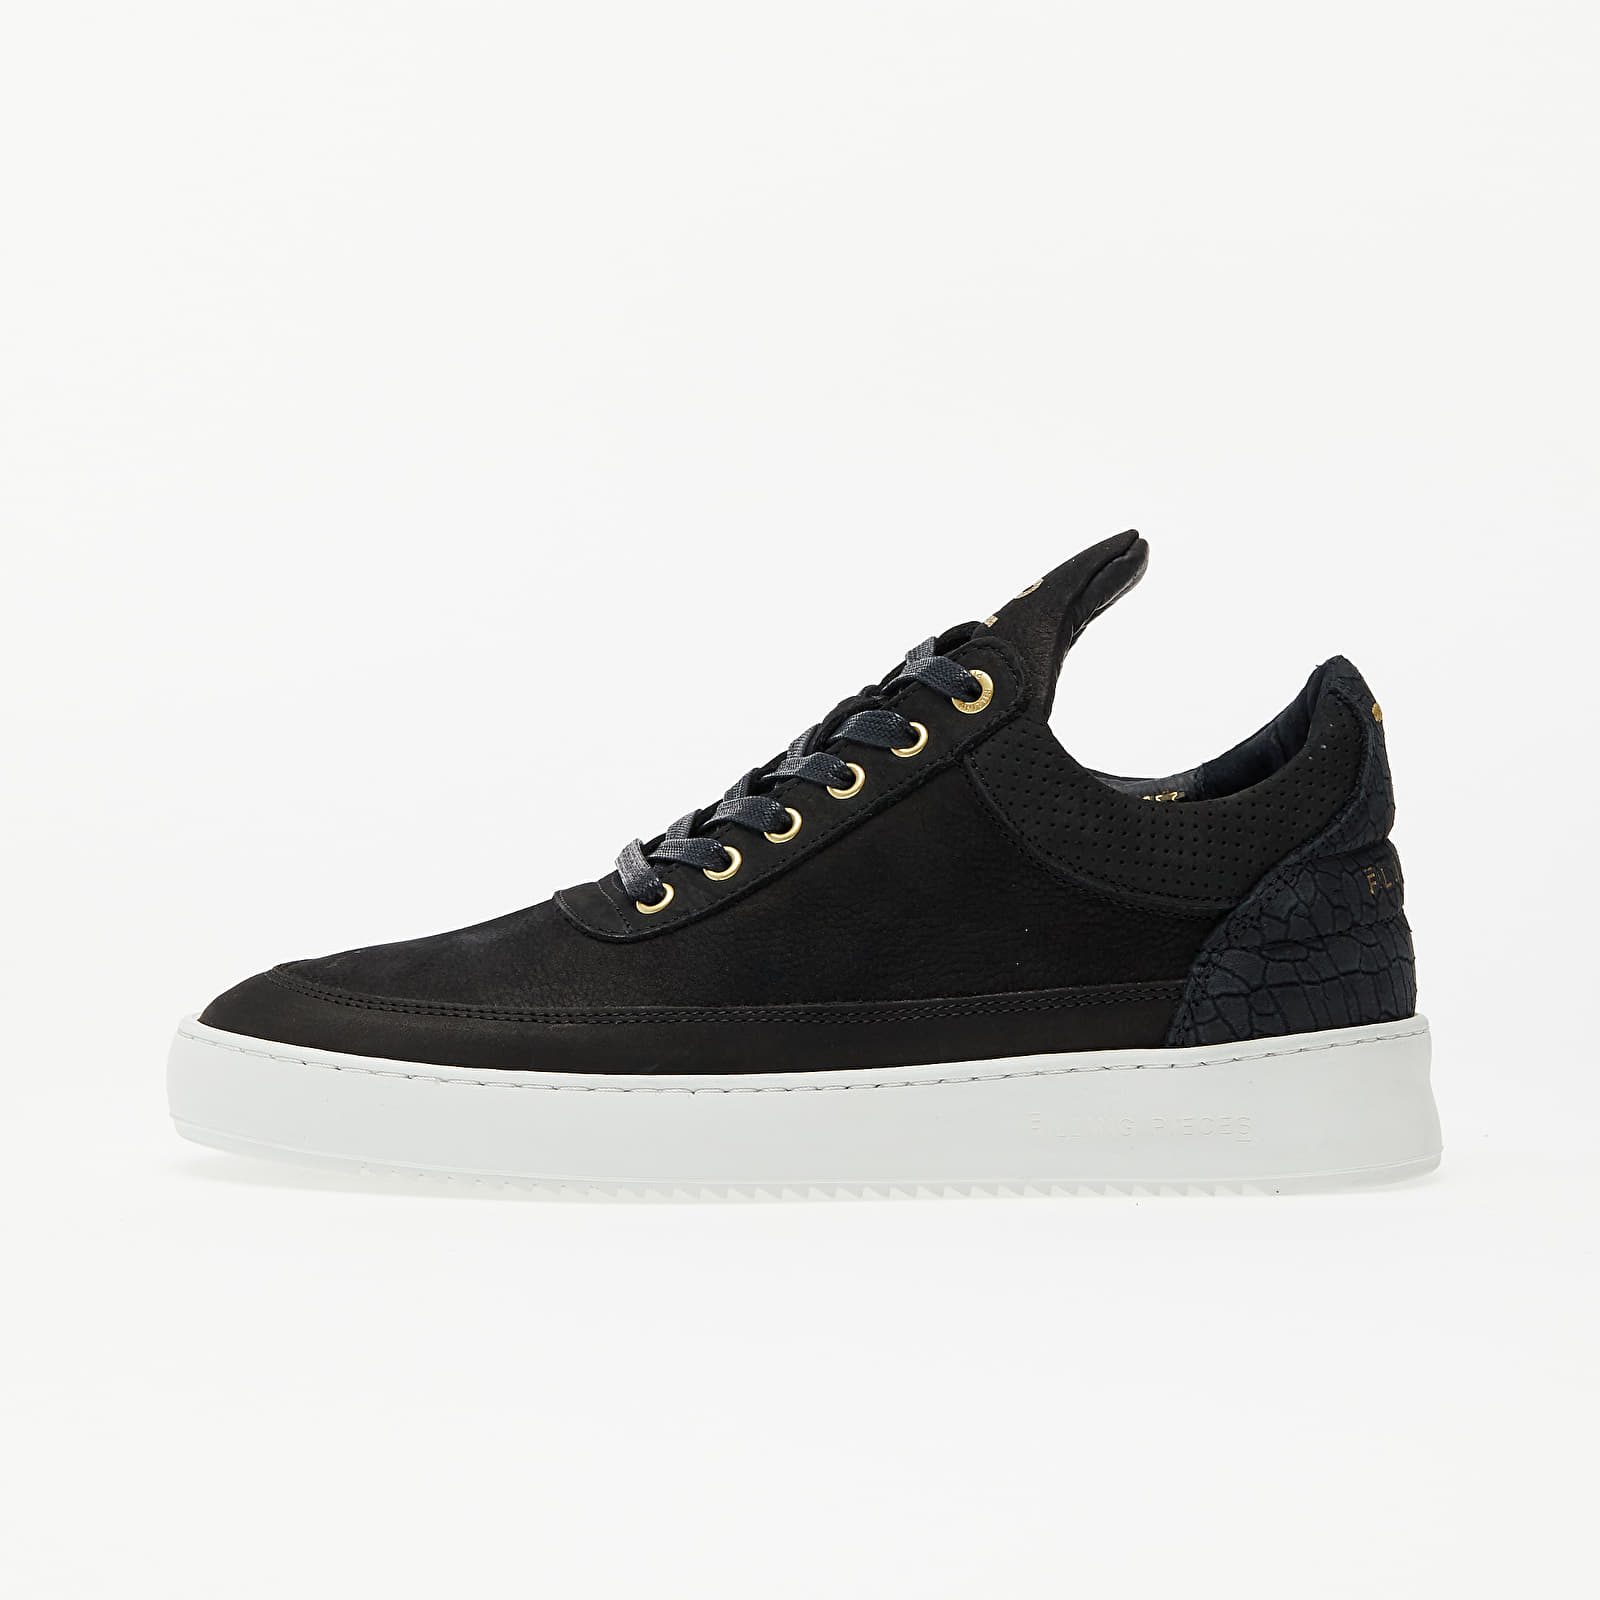 Men's shoes Filling Pieces Low Top Ripple Ceres Black